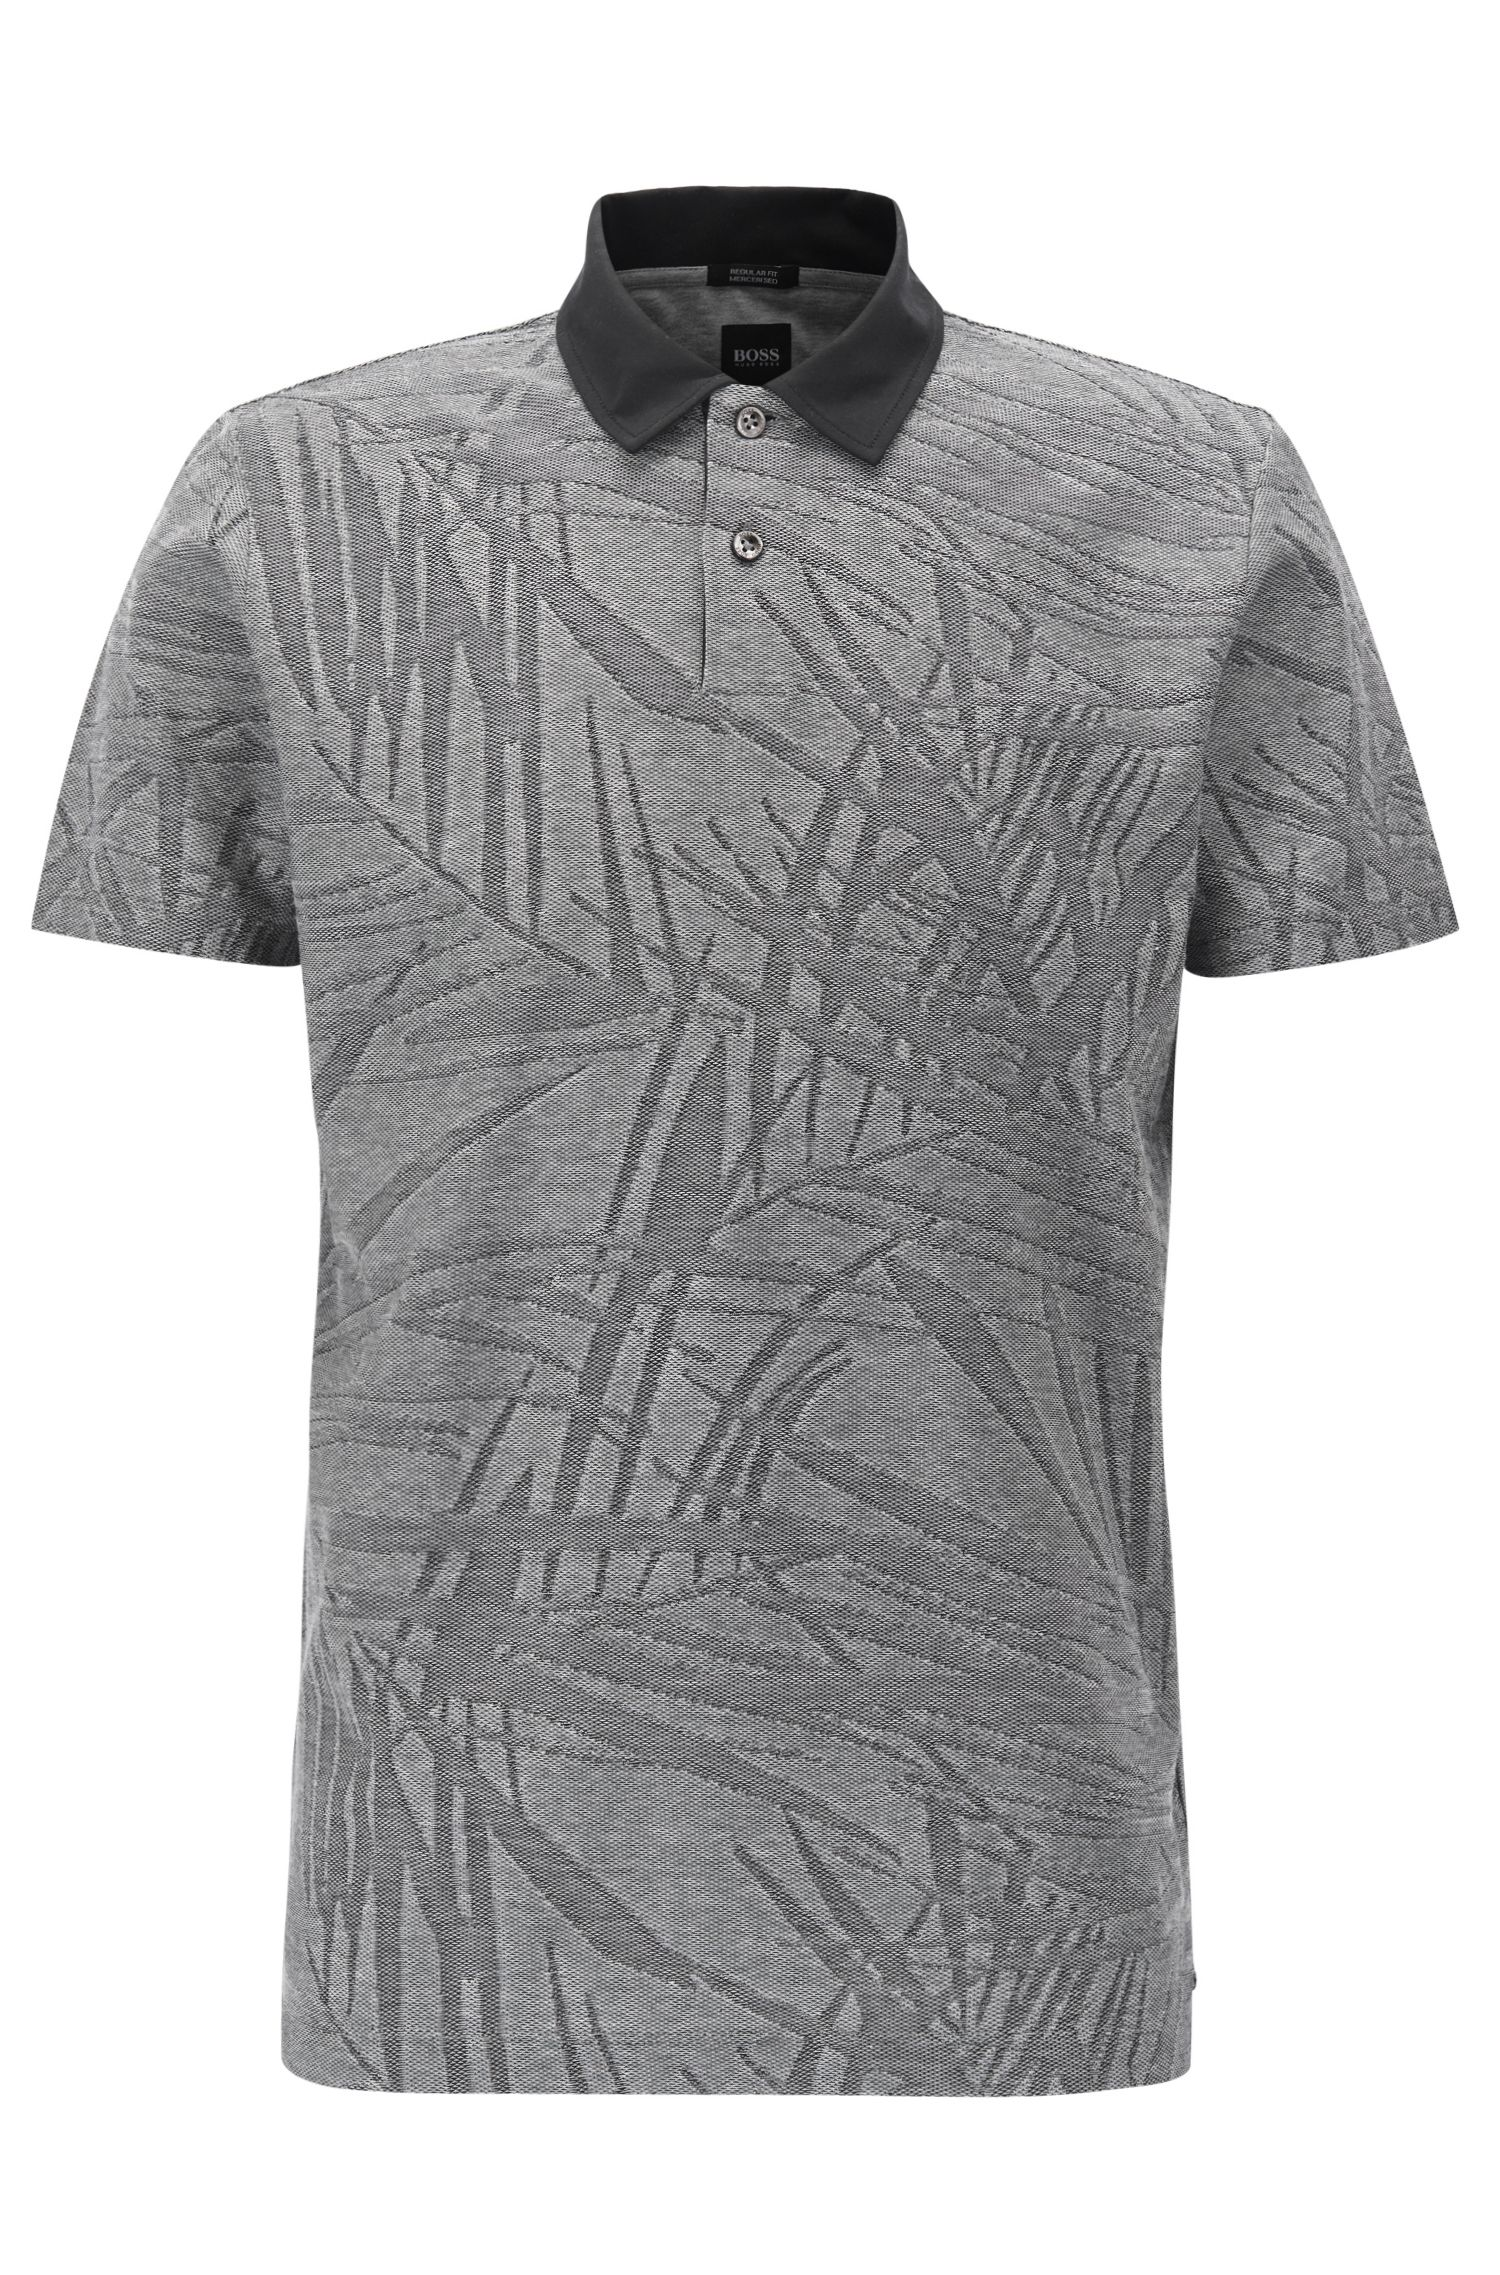 Palm-tree-pattern polo shirt in mercerised cotton jacquard